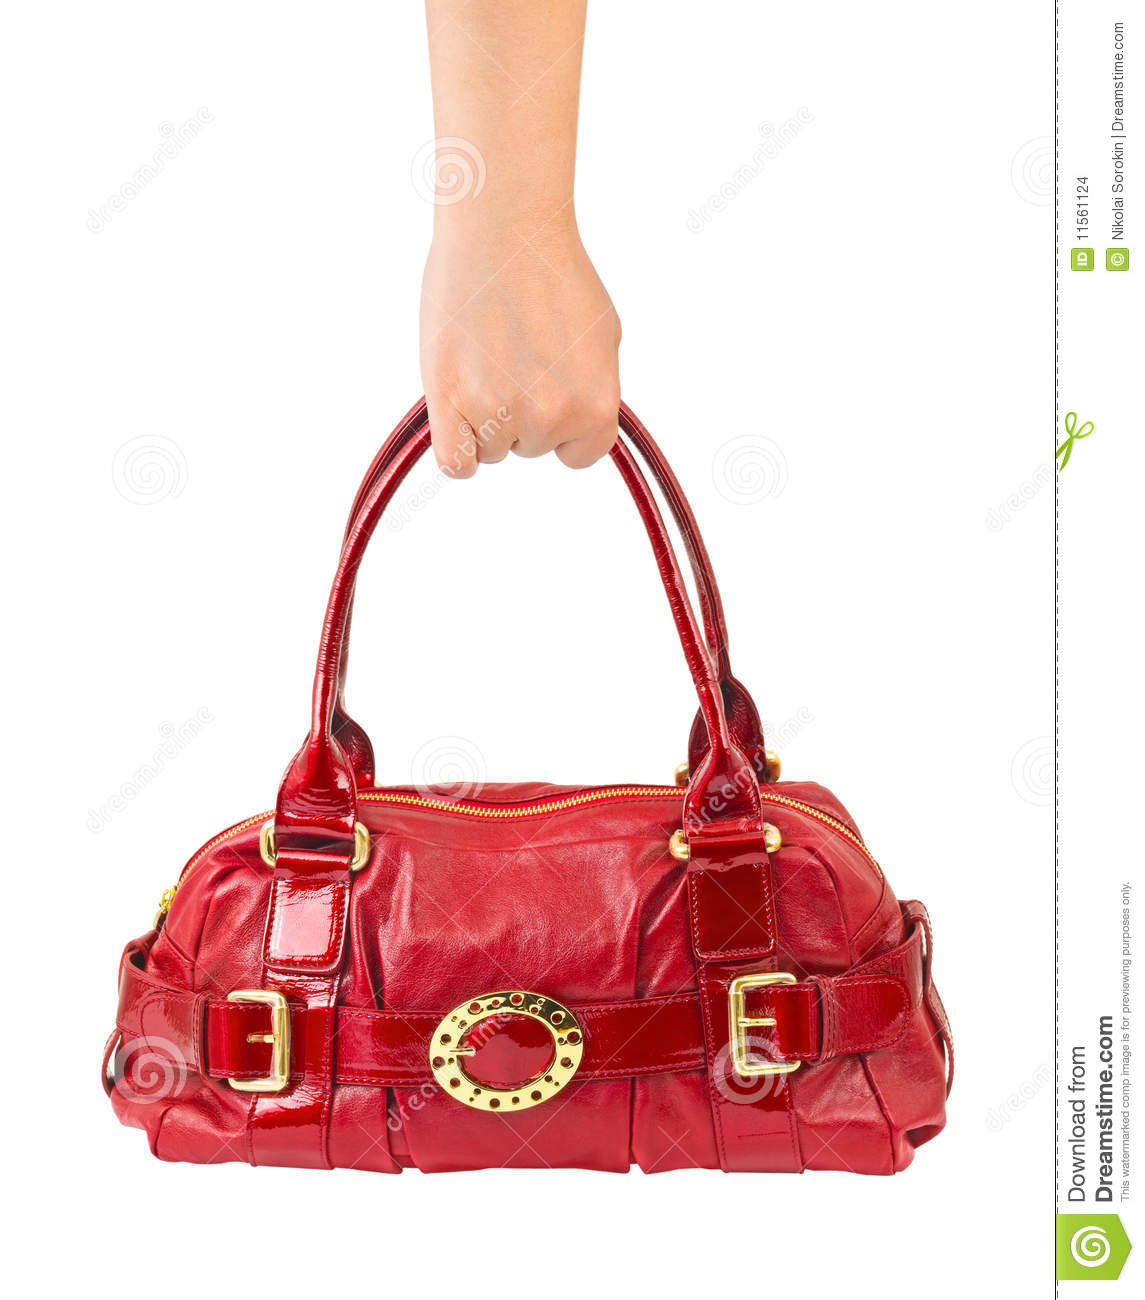 Hand With Bag Stock Images - Image: 11561124